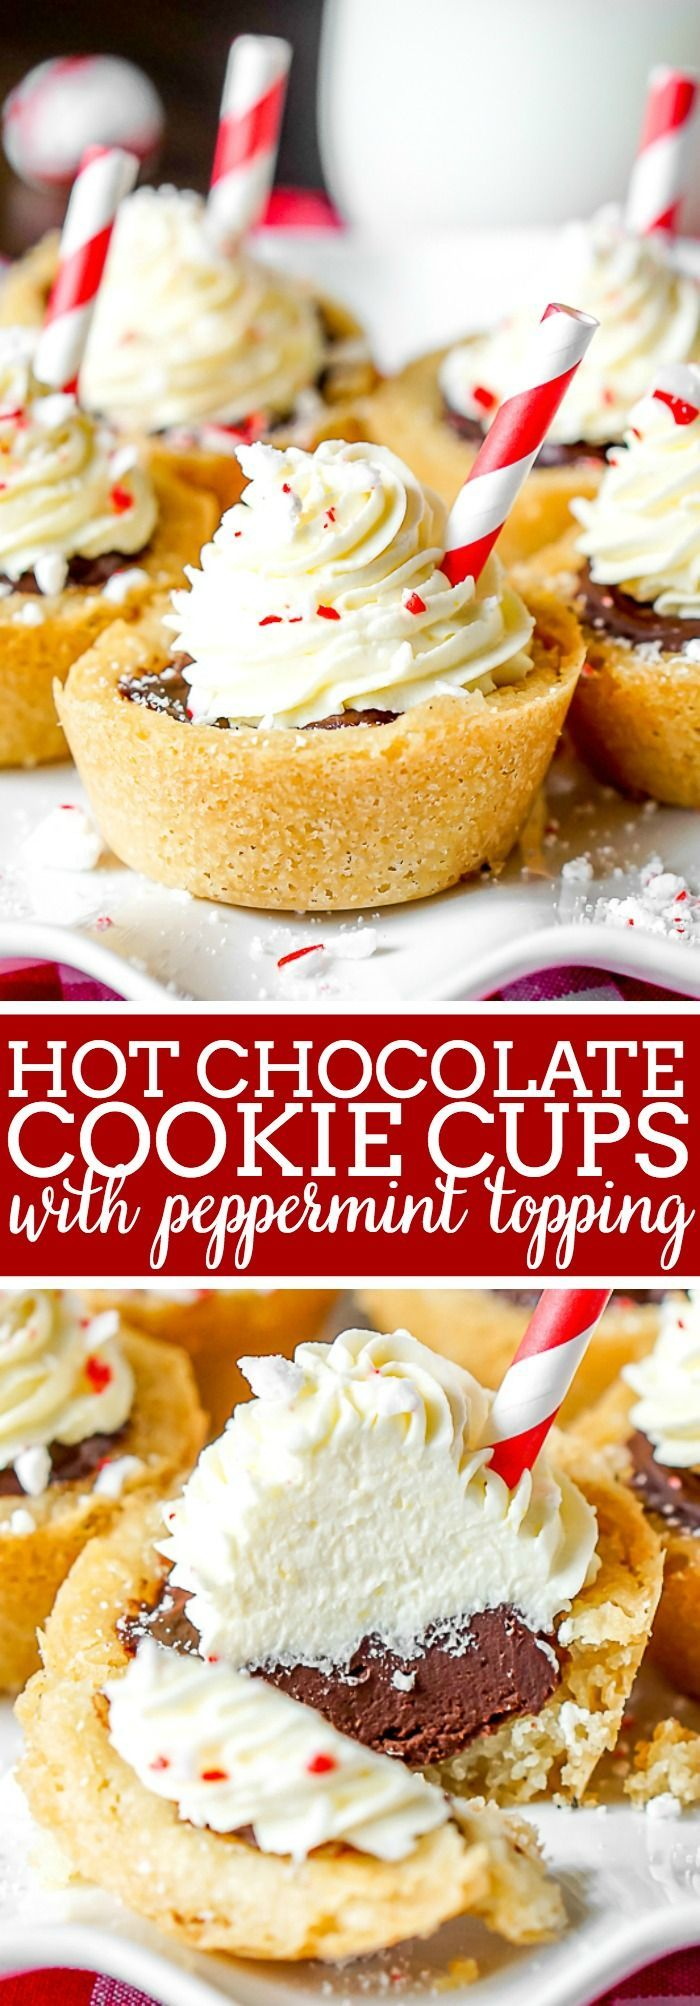 Bring the classic holiday drink to your Christmas cookies with these Hot Chocolate Cookie Cups with non wilt whipped peppermint topping! An easy sugar cookie cup is filled with rich, decadent chocolate ganache, then garnished with peppermint pieces and a straw for a gorgeous presentation. They make the perfect addition to any Christmas Cookie Exchange!  The Love Nerds #christmascookie #sugarcookiecup #hotchocolatecookies via @lovenerdmaggie